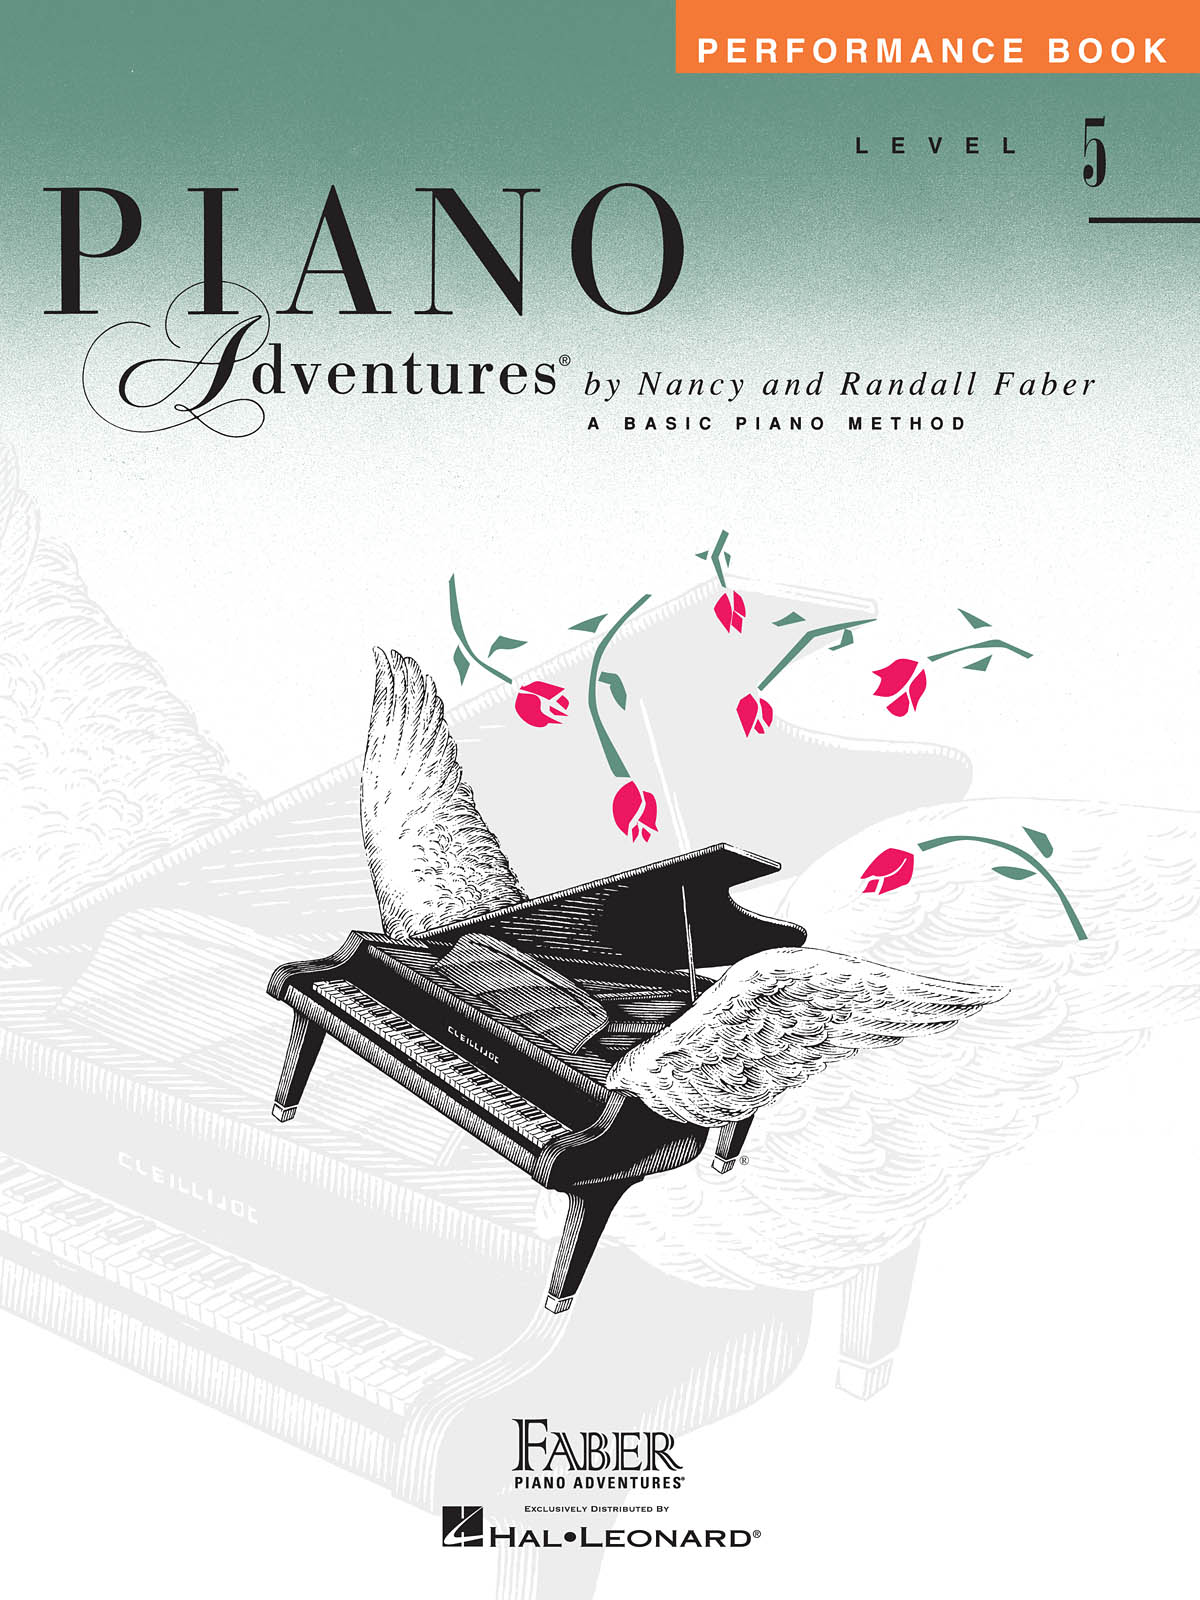 Faber Piano Adventures, Performance Book, Level 5